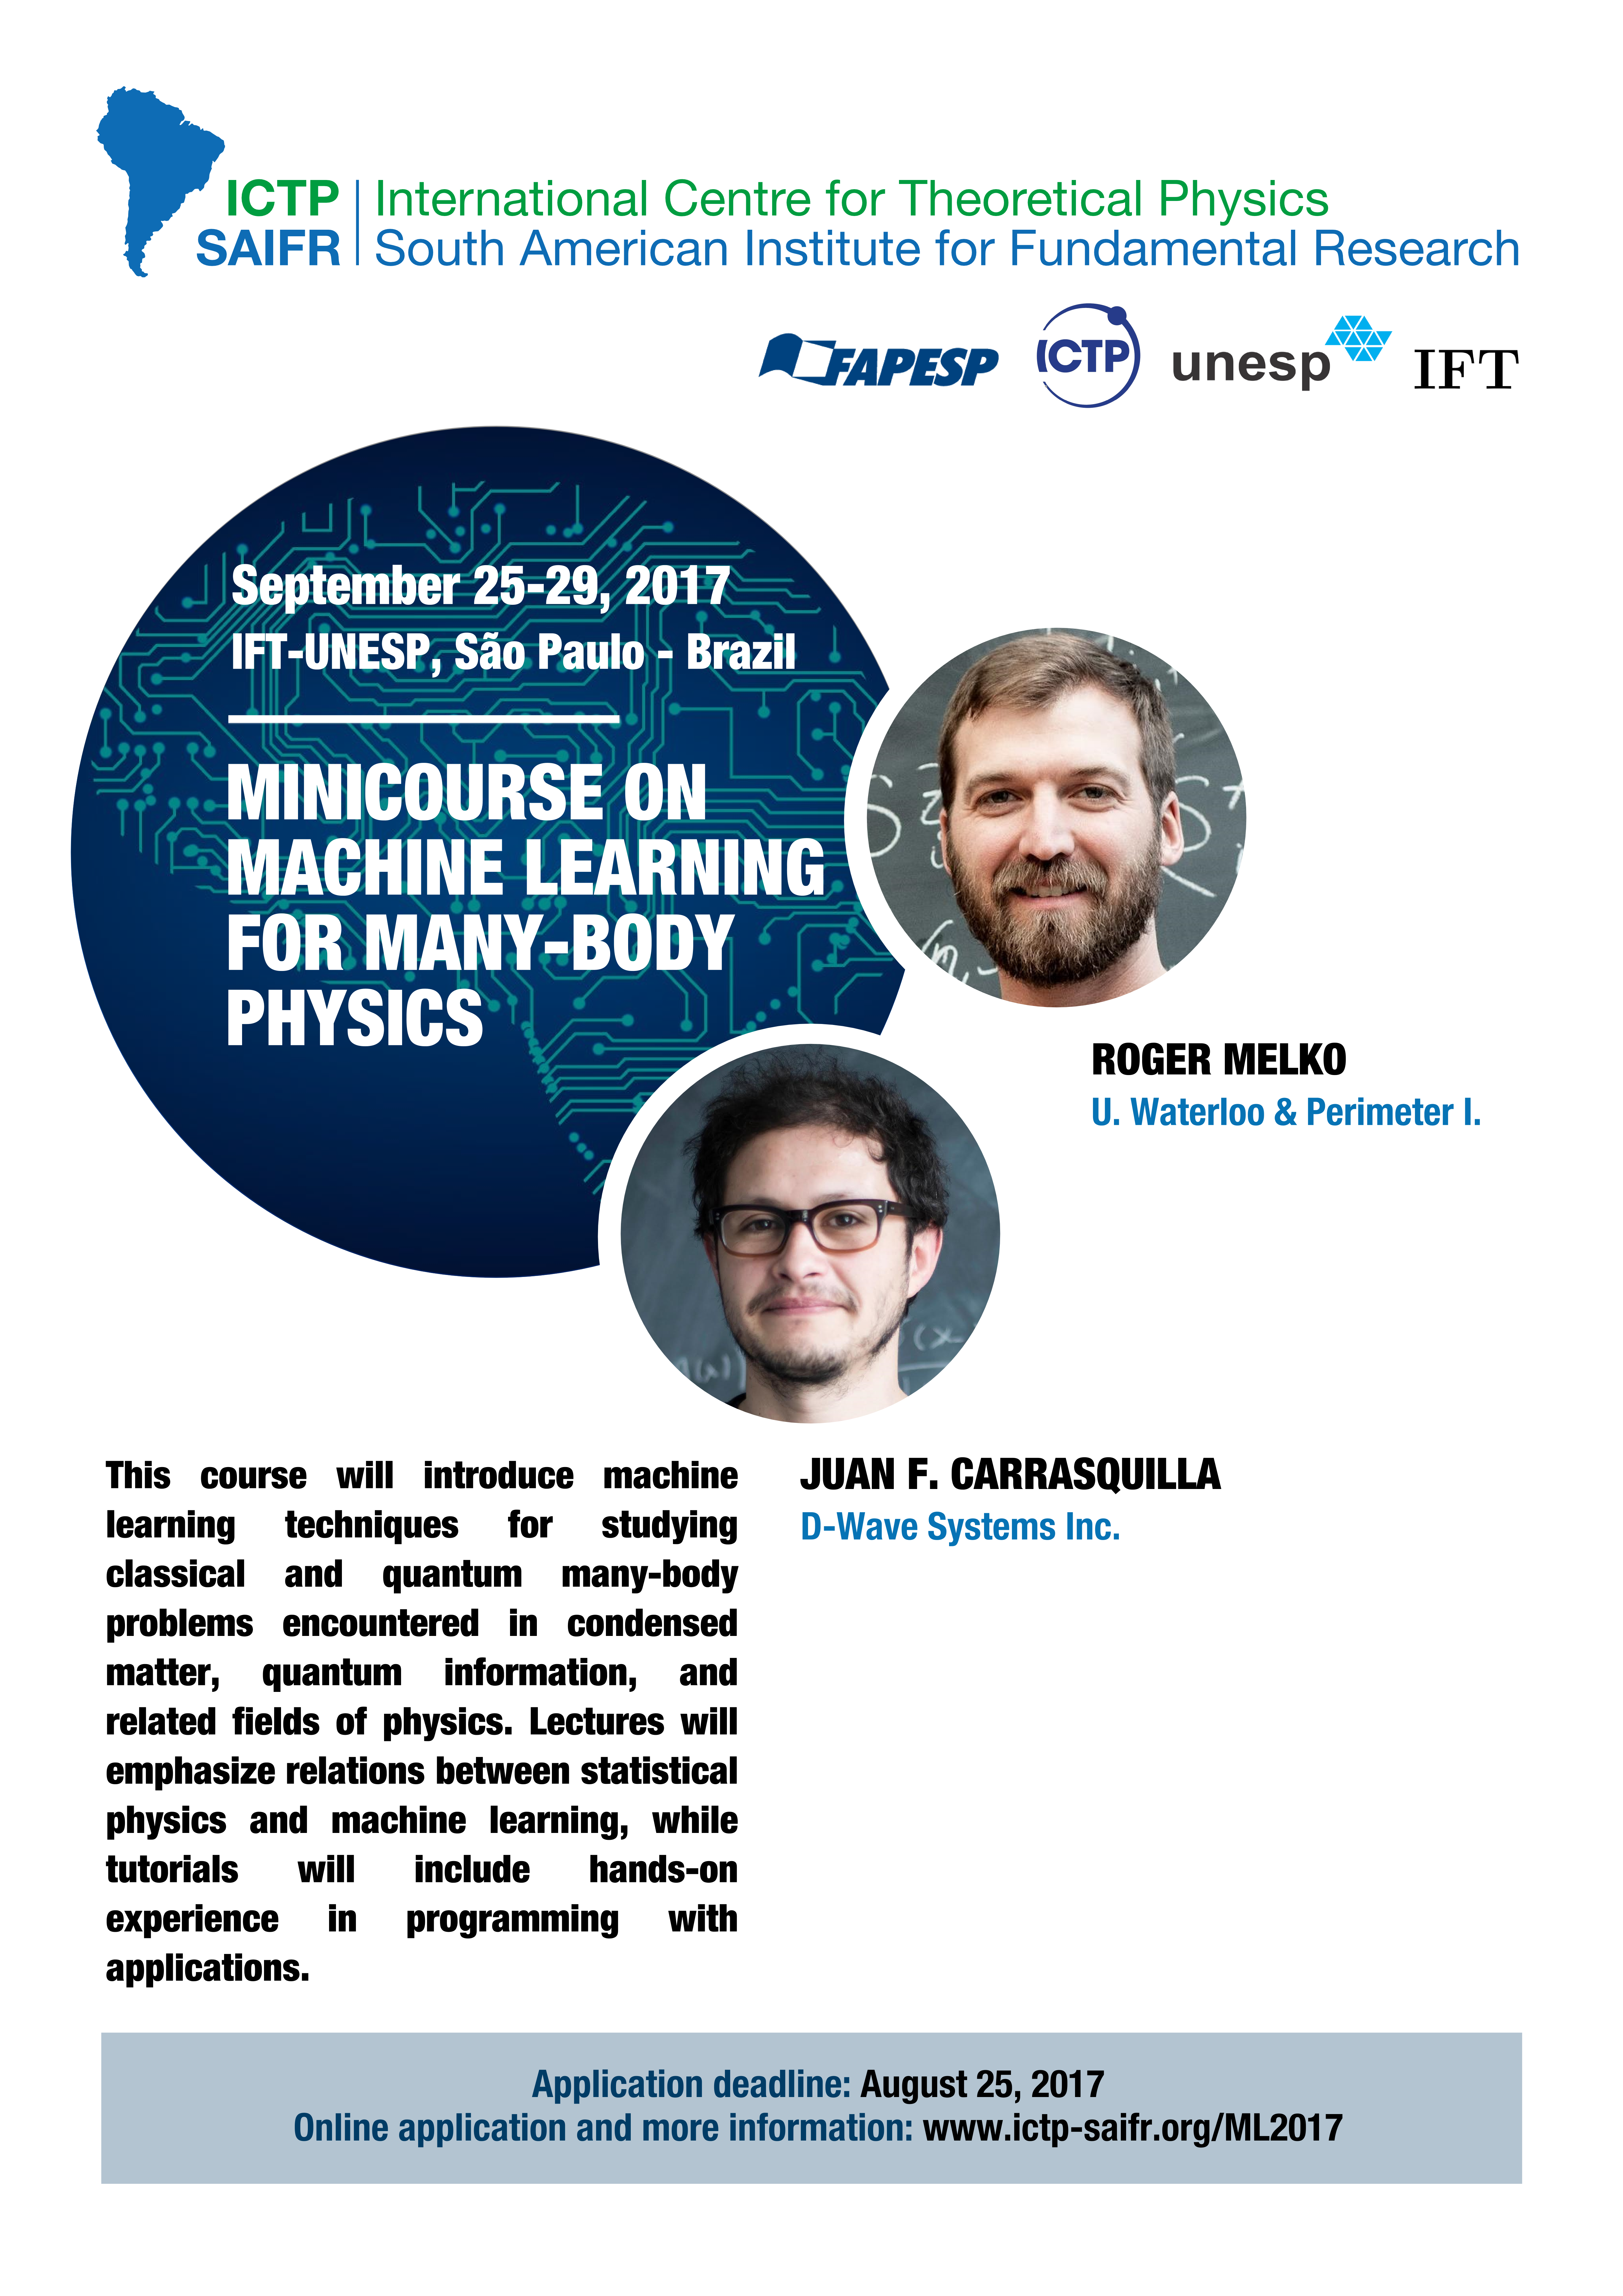 ICTP – SAIFR » Minicourse on Machine Learning for Many-Body